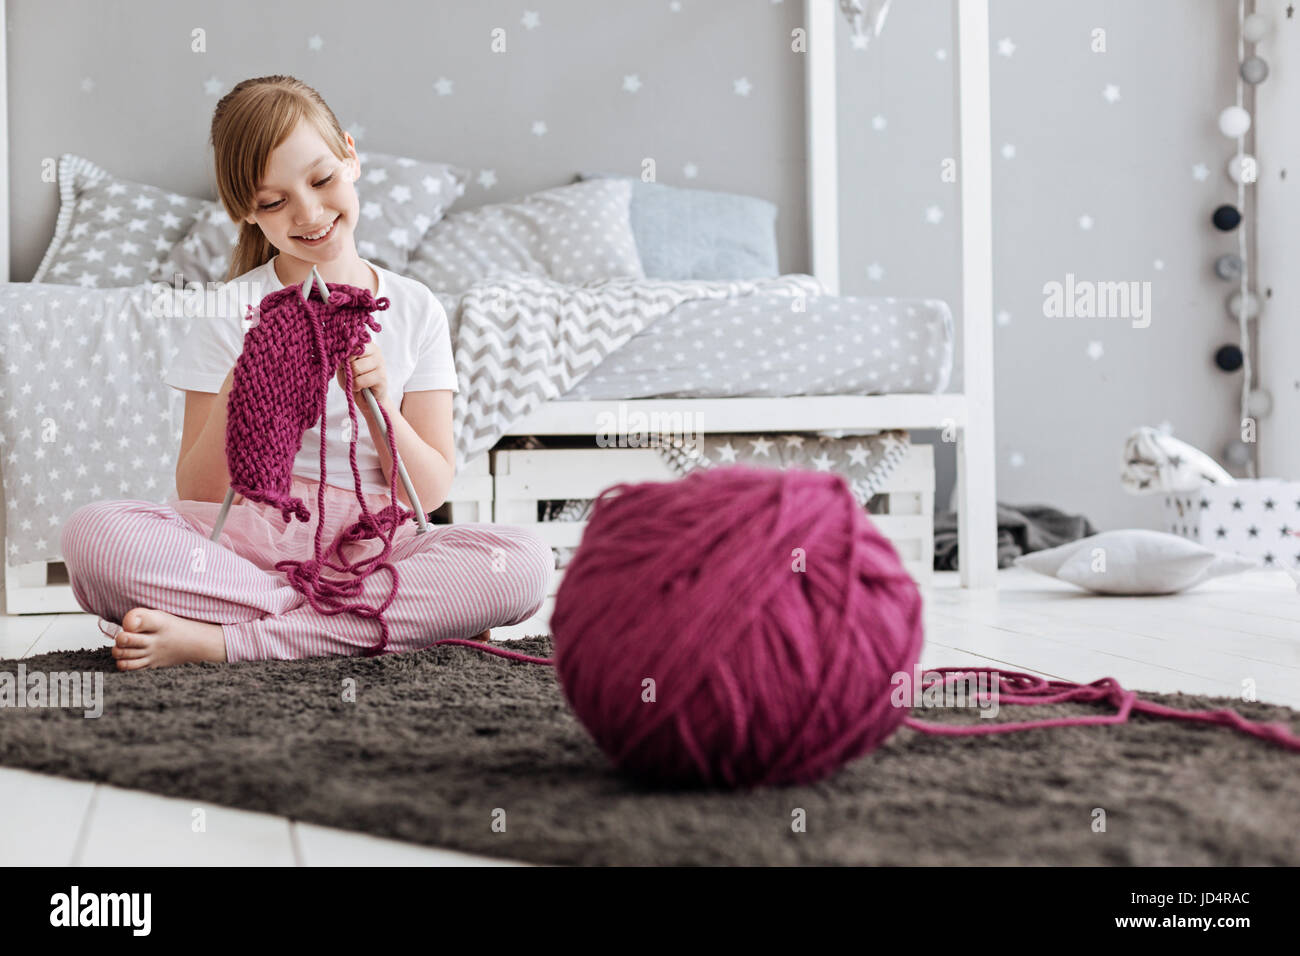 Incredible girl creating something with her own hands - Stock Image